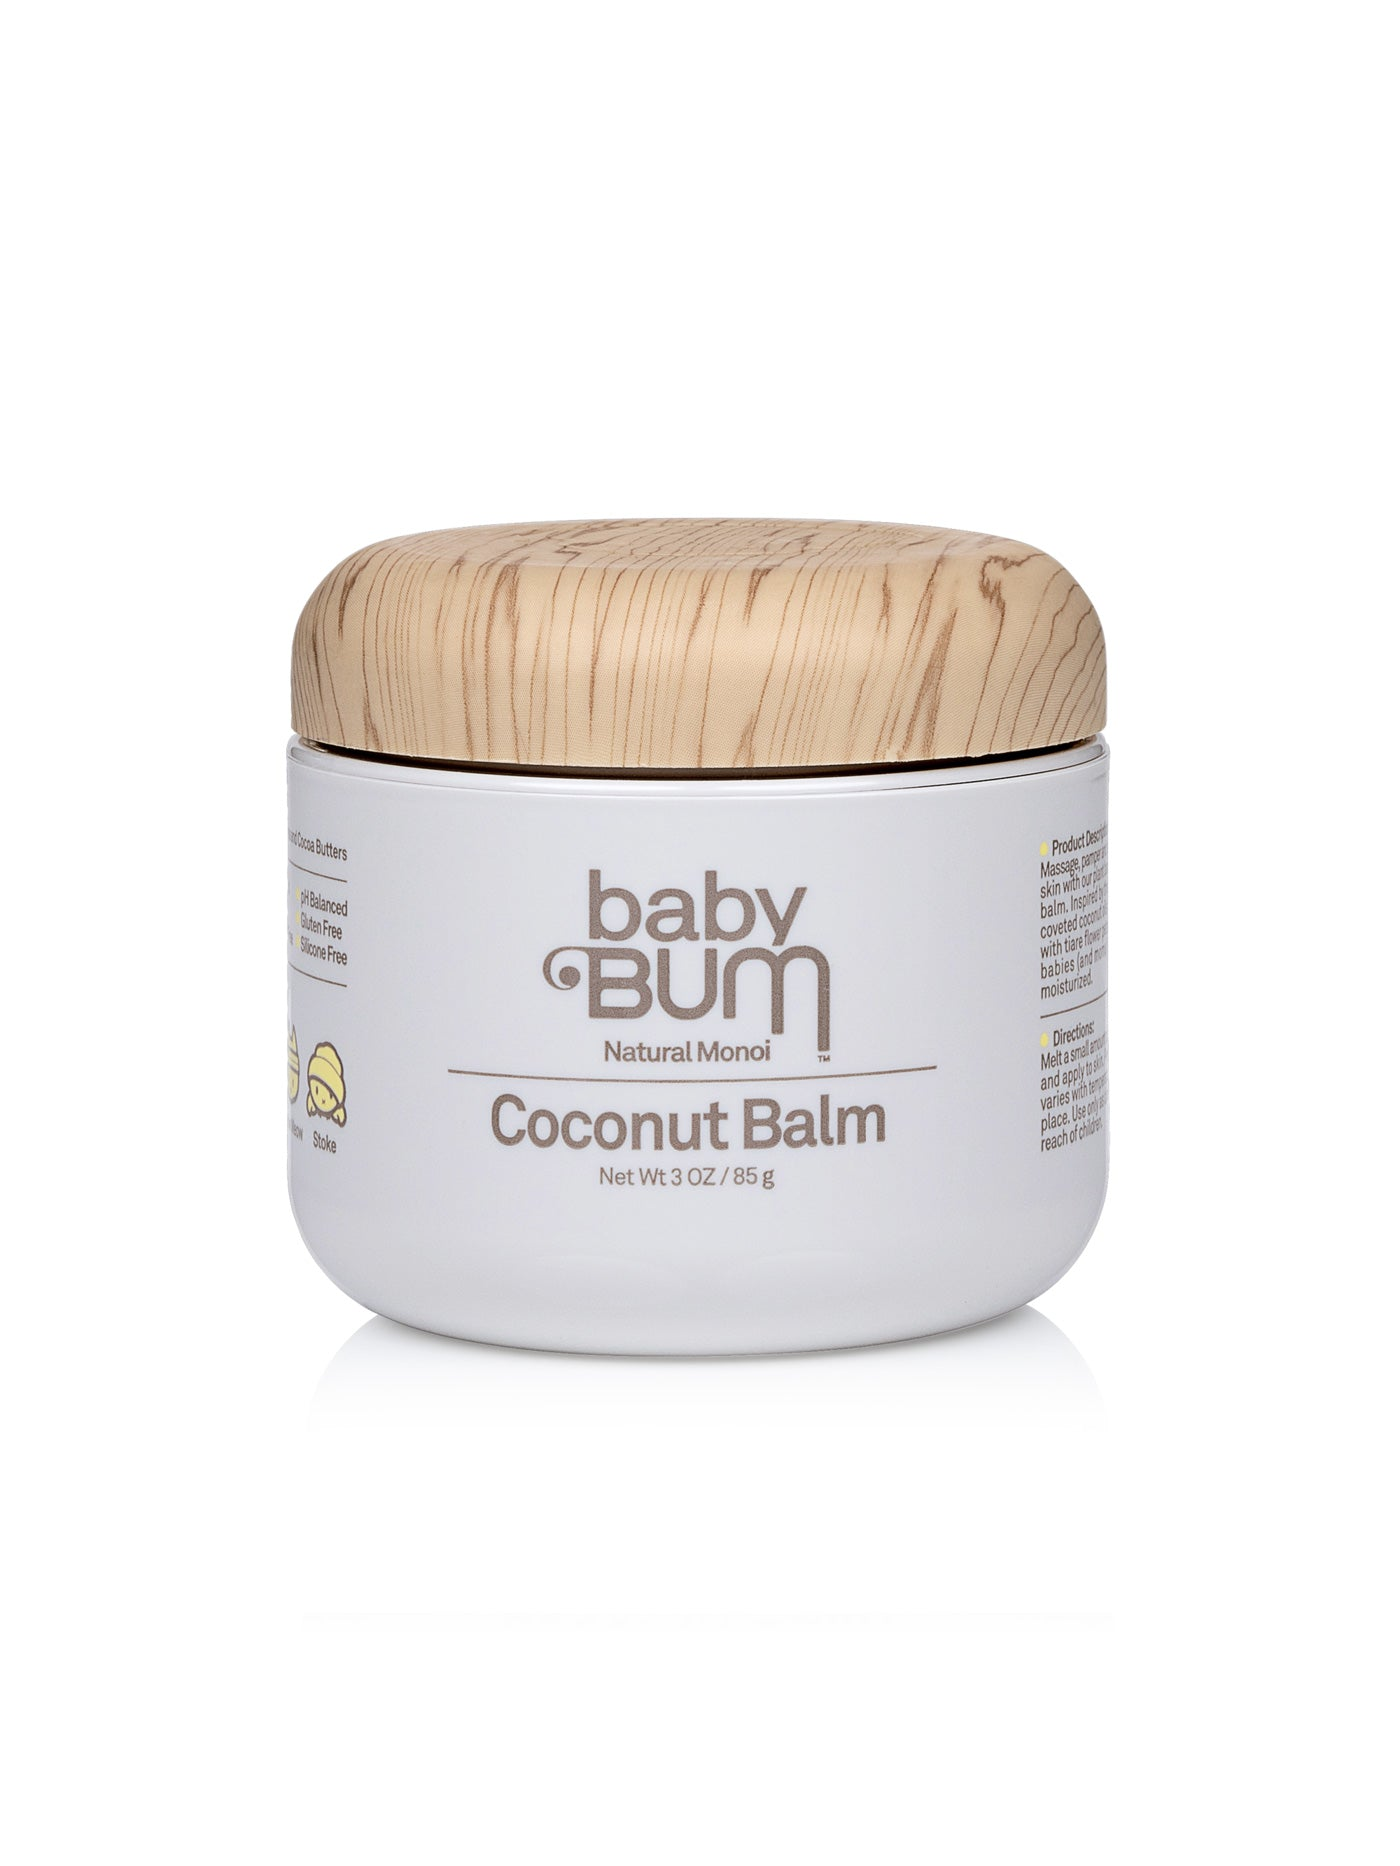 Baby Bum Natural Monoi Coconut Balm